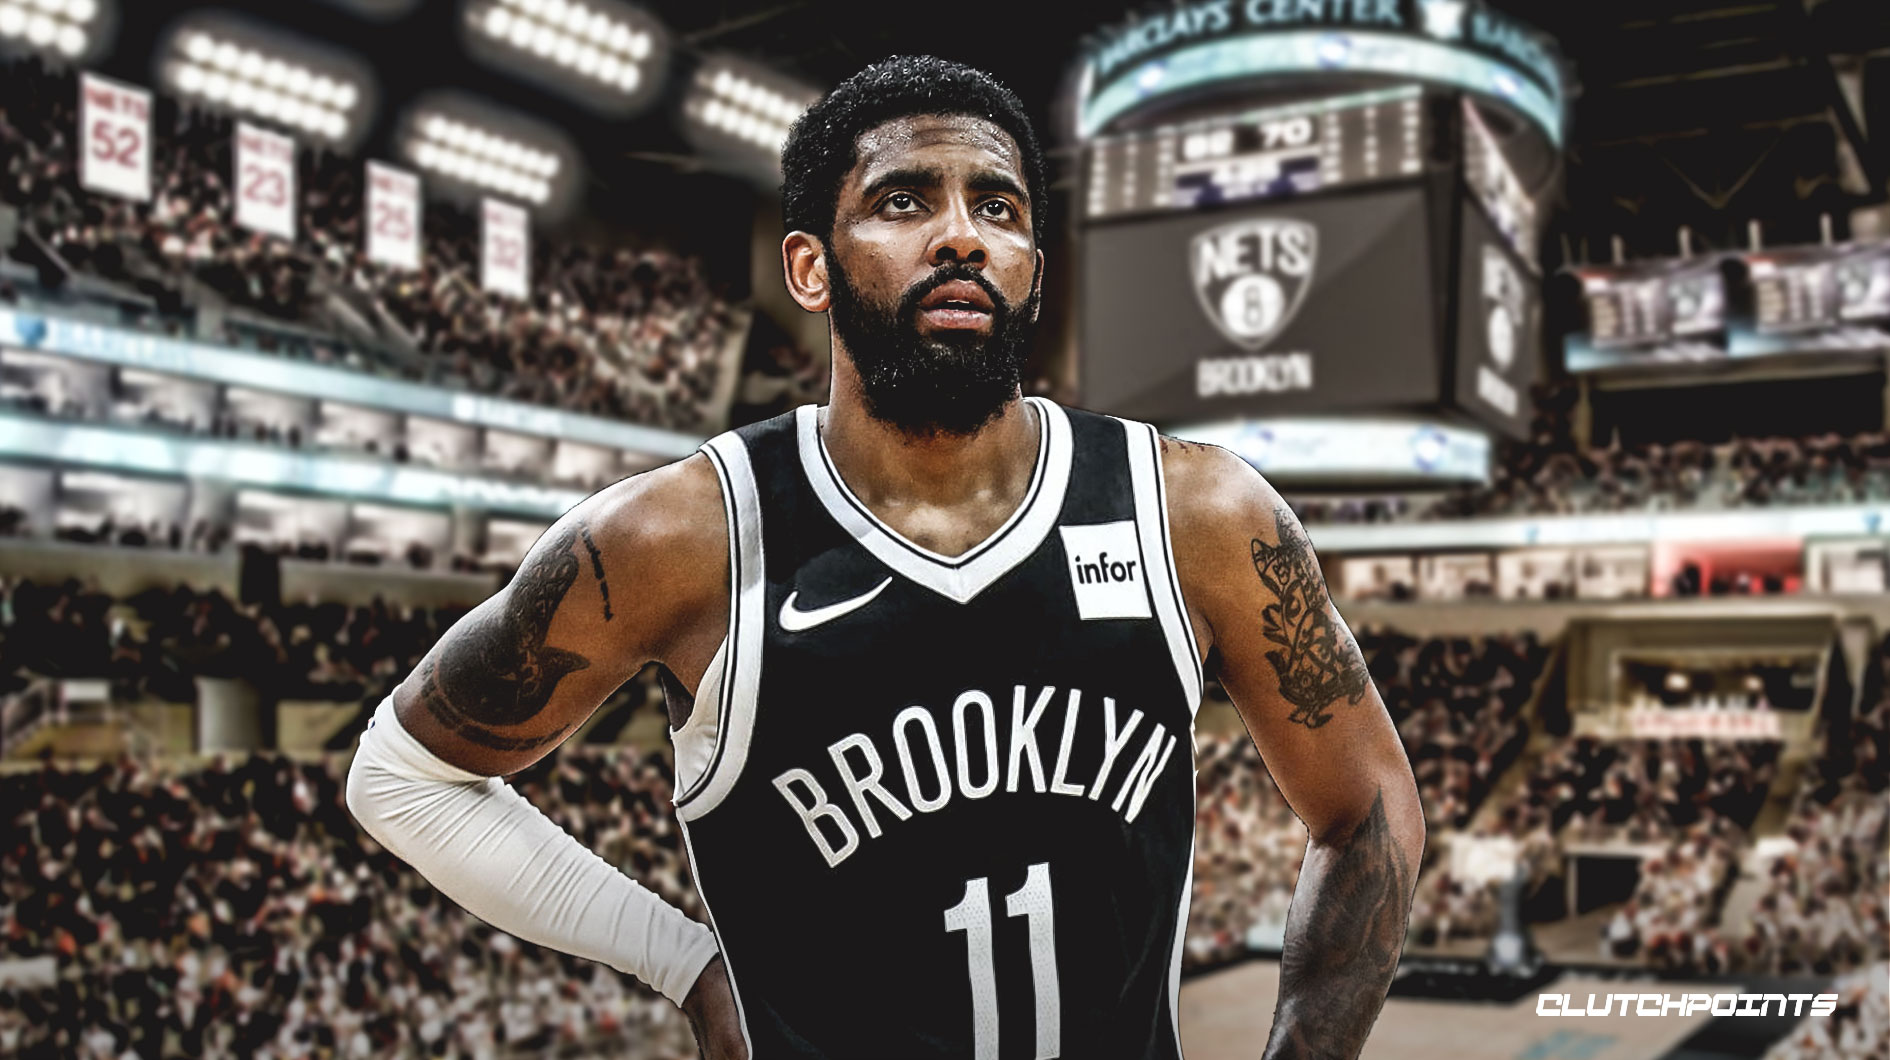 Kyrie-Irving-prepared-to-sign-with-Brooklyn-in-free-agency-Brooklyn-operating-as-if-he_ll-sign.jpg